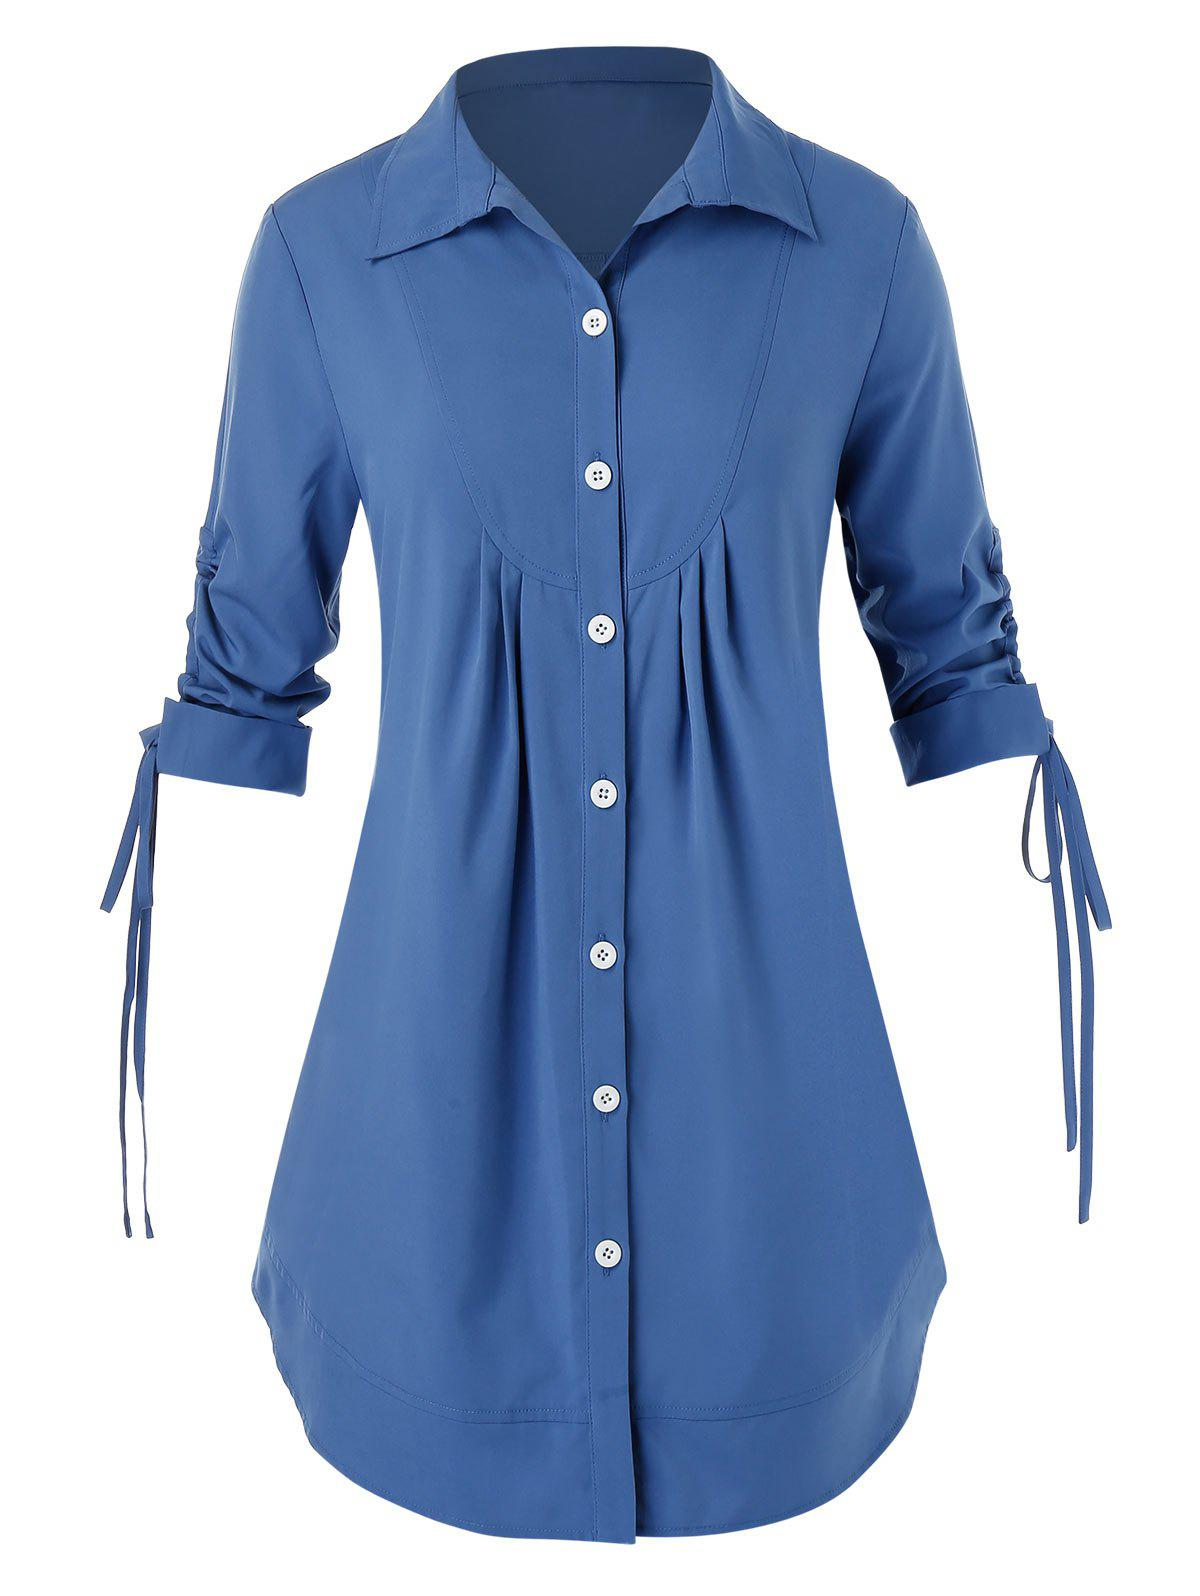 Bouton Plus Size Up Shirt Bleu de Soie 5X